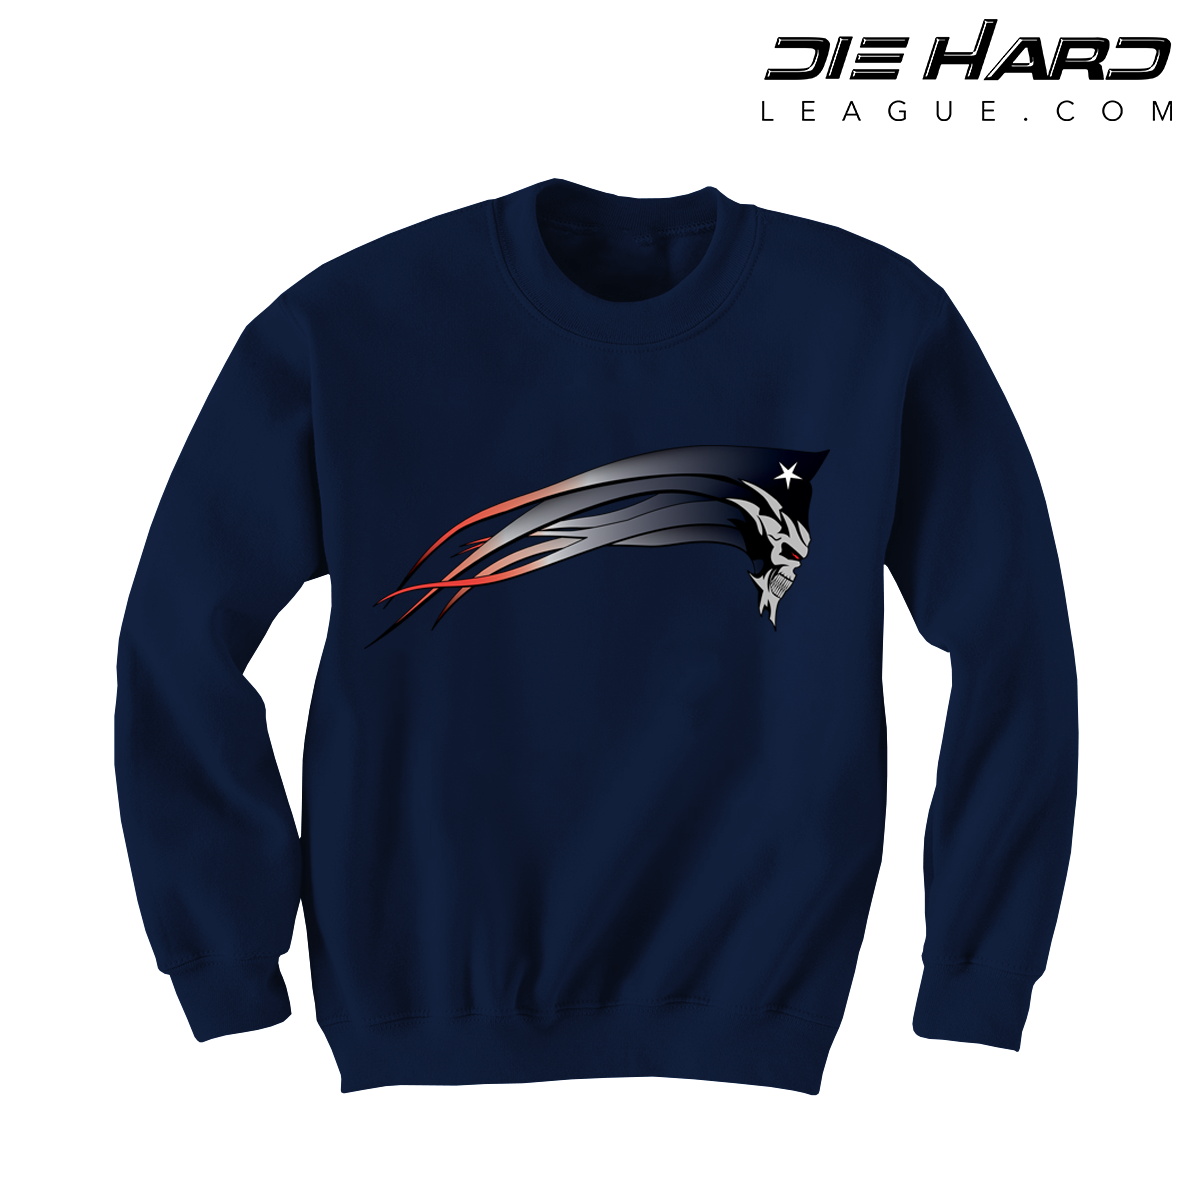 a2917a60 New England Patriots Sweatshirts - Patriots Dark Patriot Navy Sweater